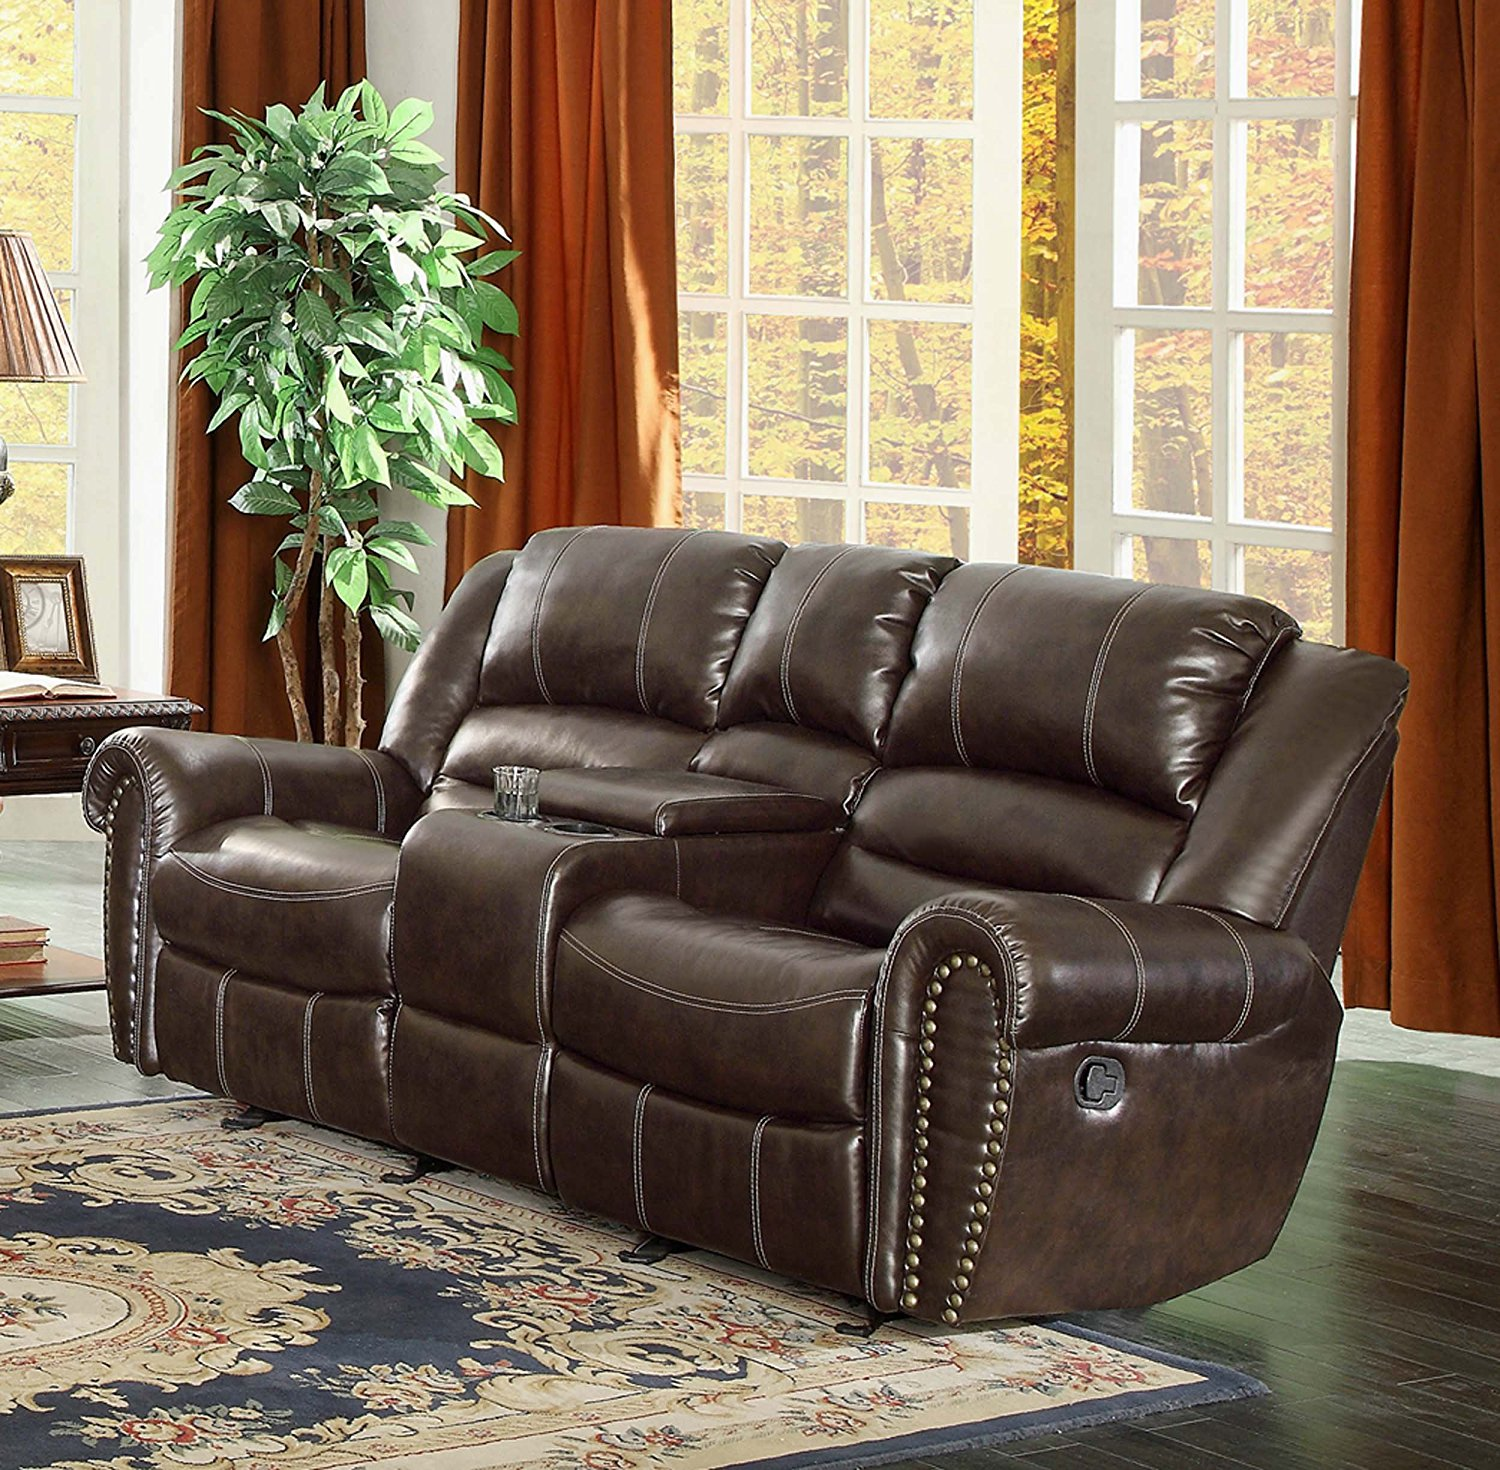 Home Decor reclining loveseat with center console amazon.com: homelegance 9668brw-2 double glider reclining loveseat with center  console, brown bonded zvacfcb